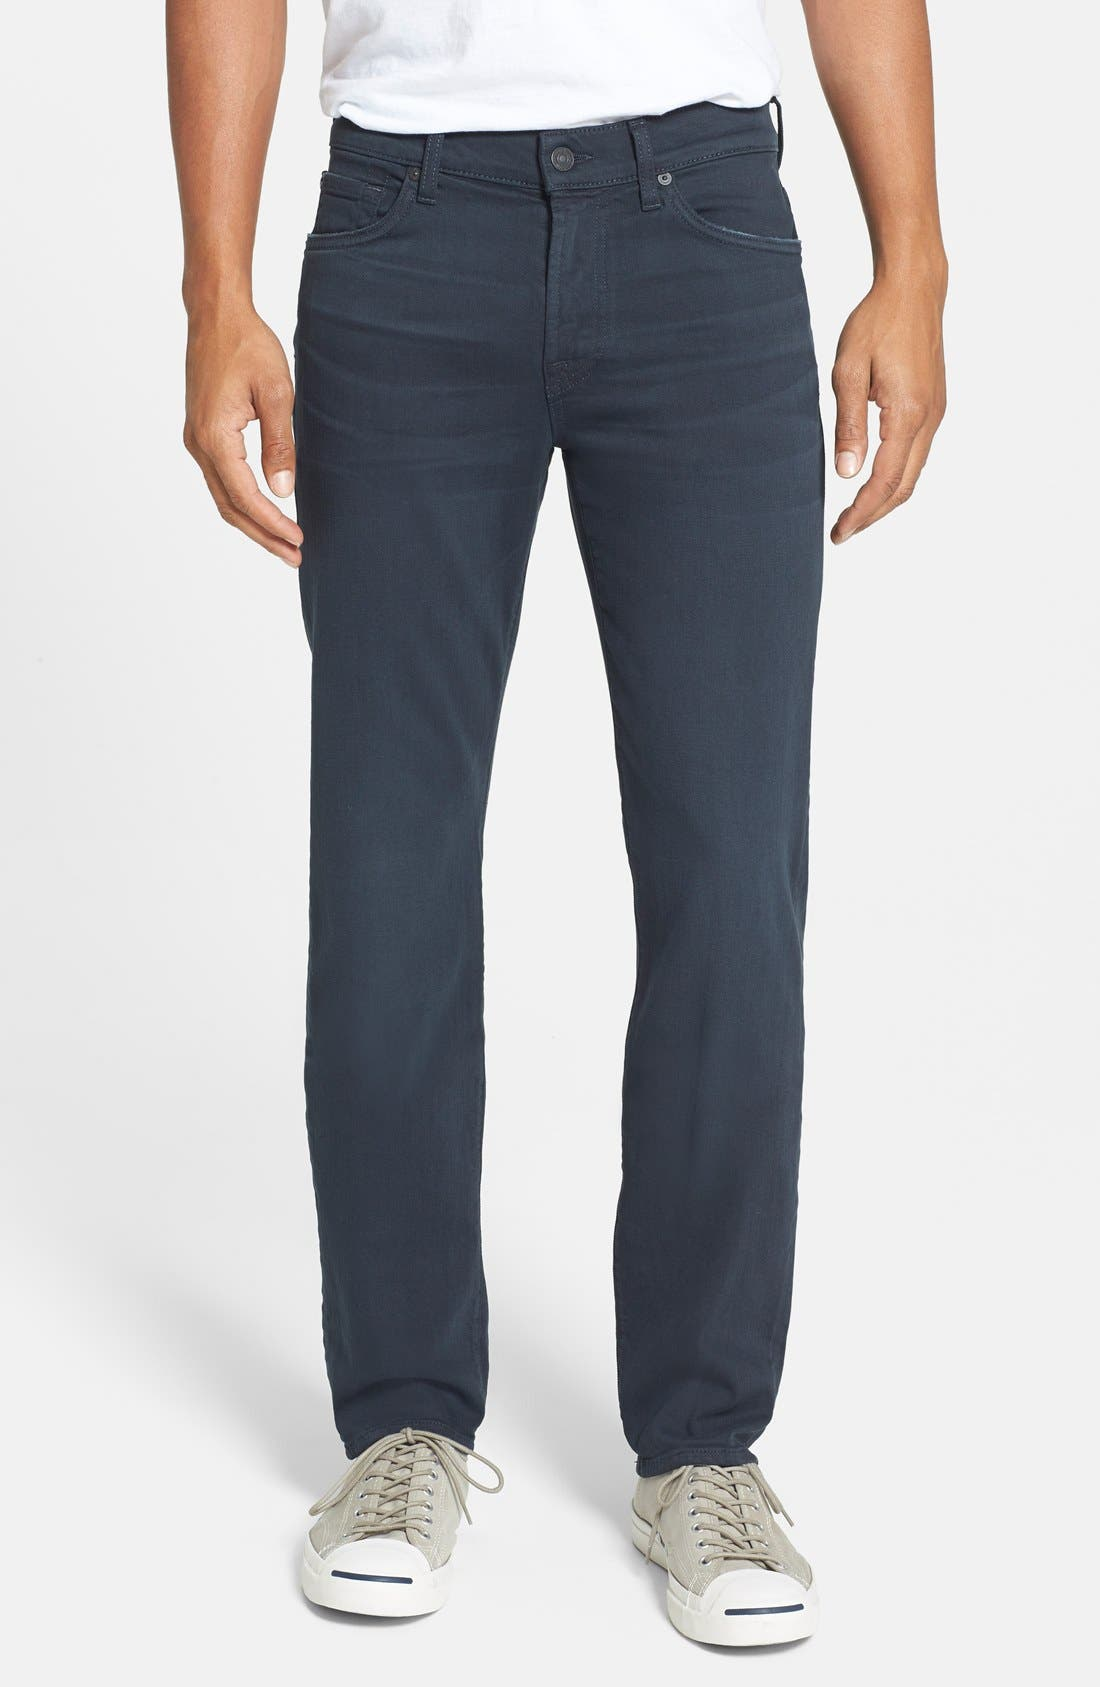 'Slimmy - Luxe Performance' Slim Fit Jeans,                         Main,                         color, 004